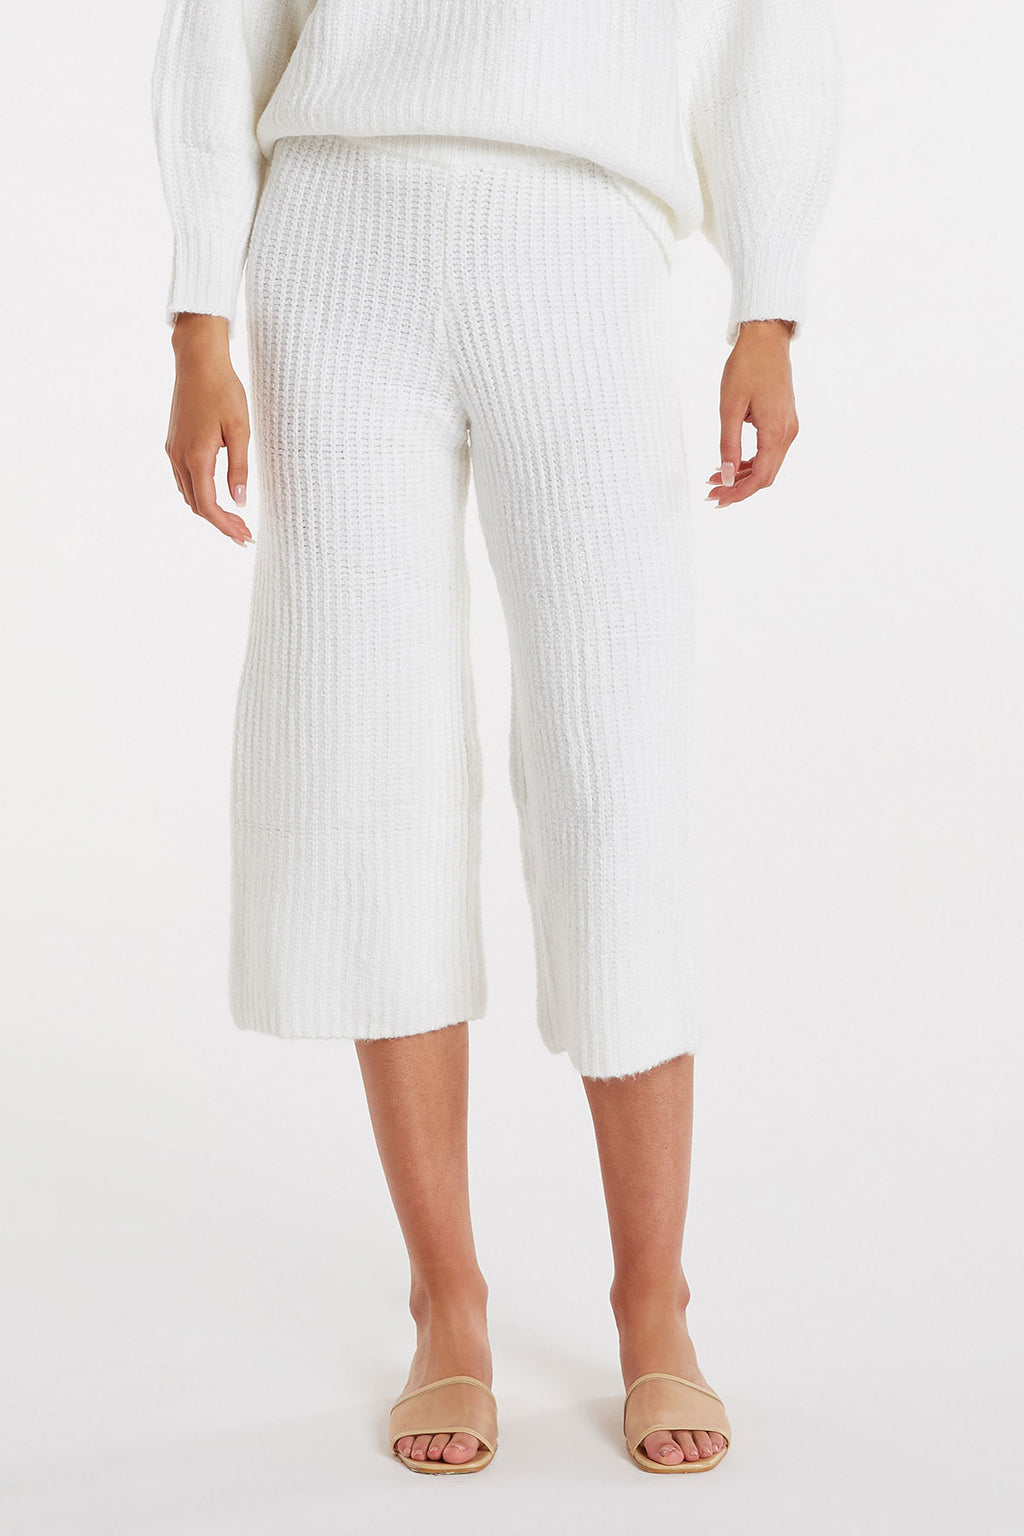 zulu & zephyr - immerse knit pant - warm white